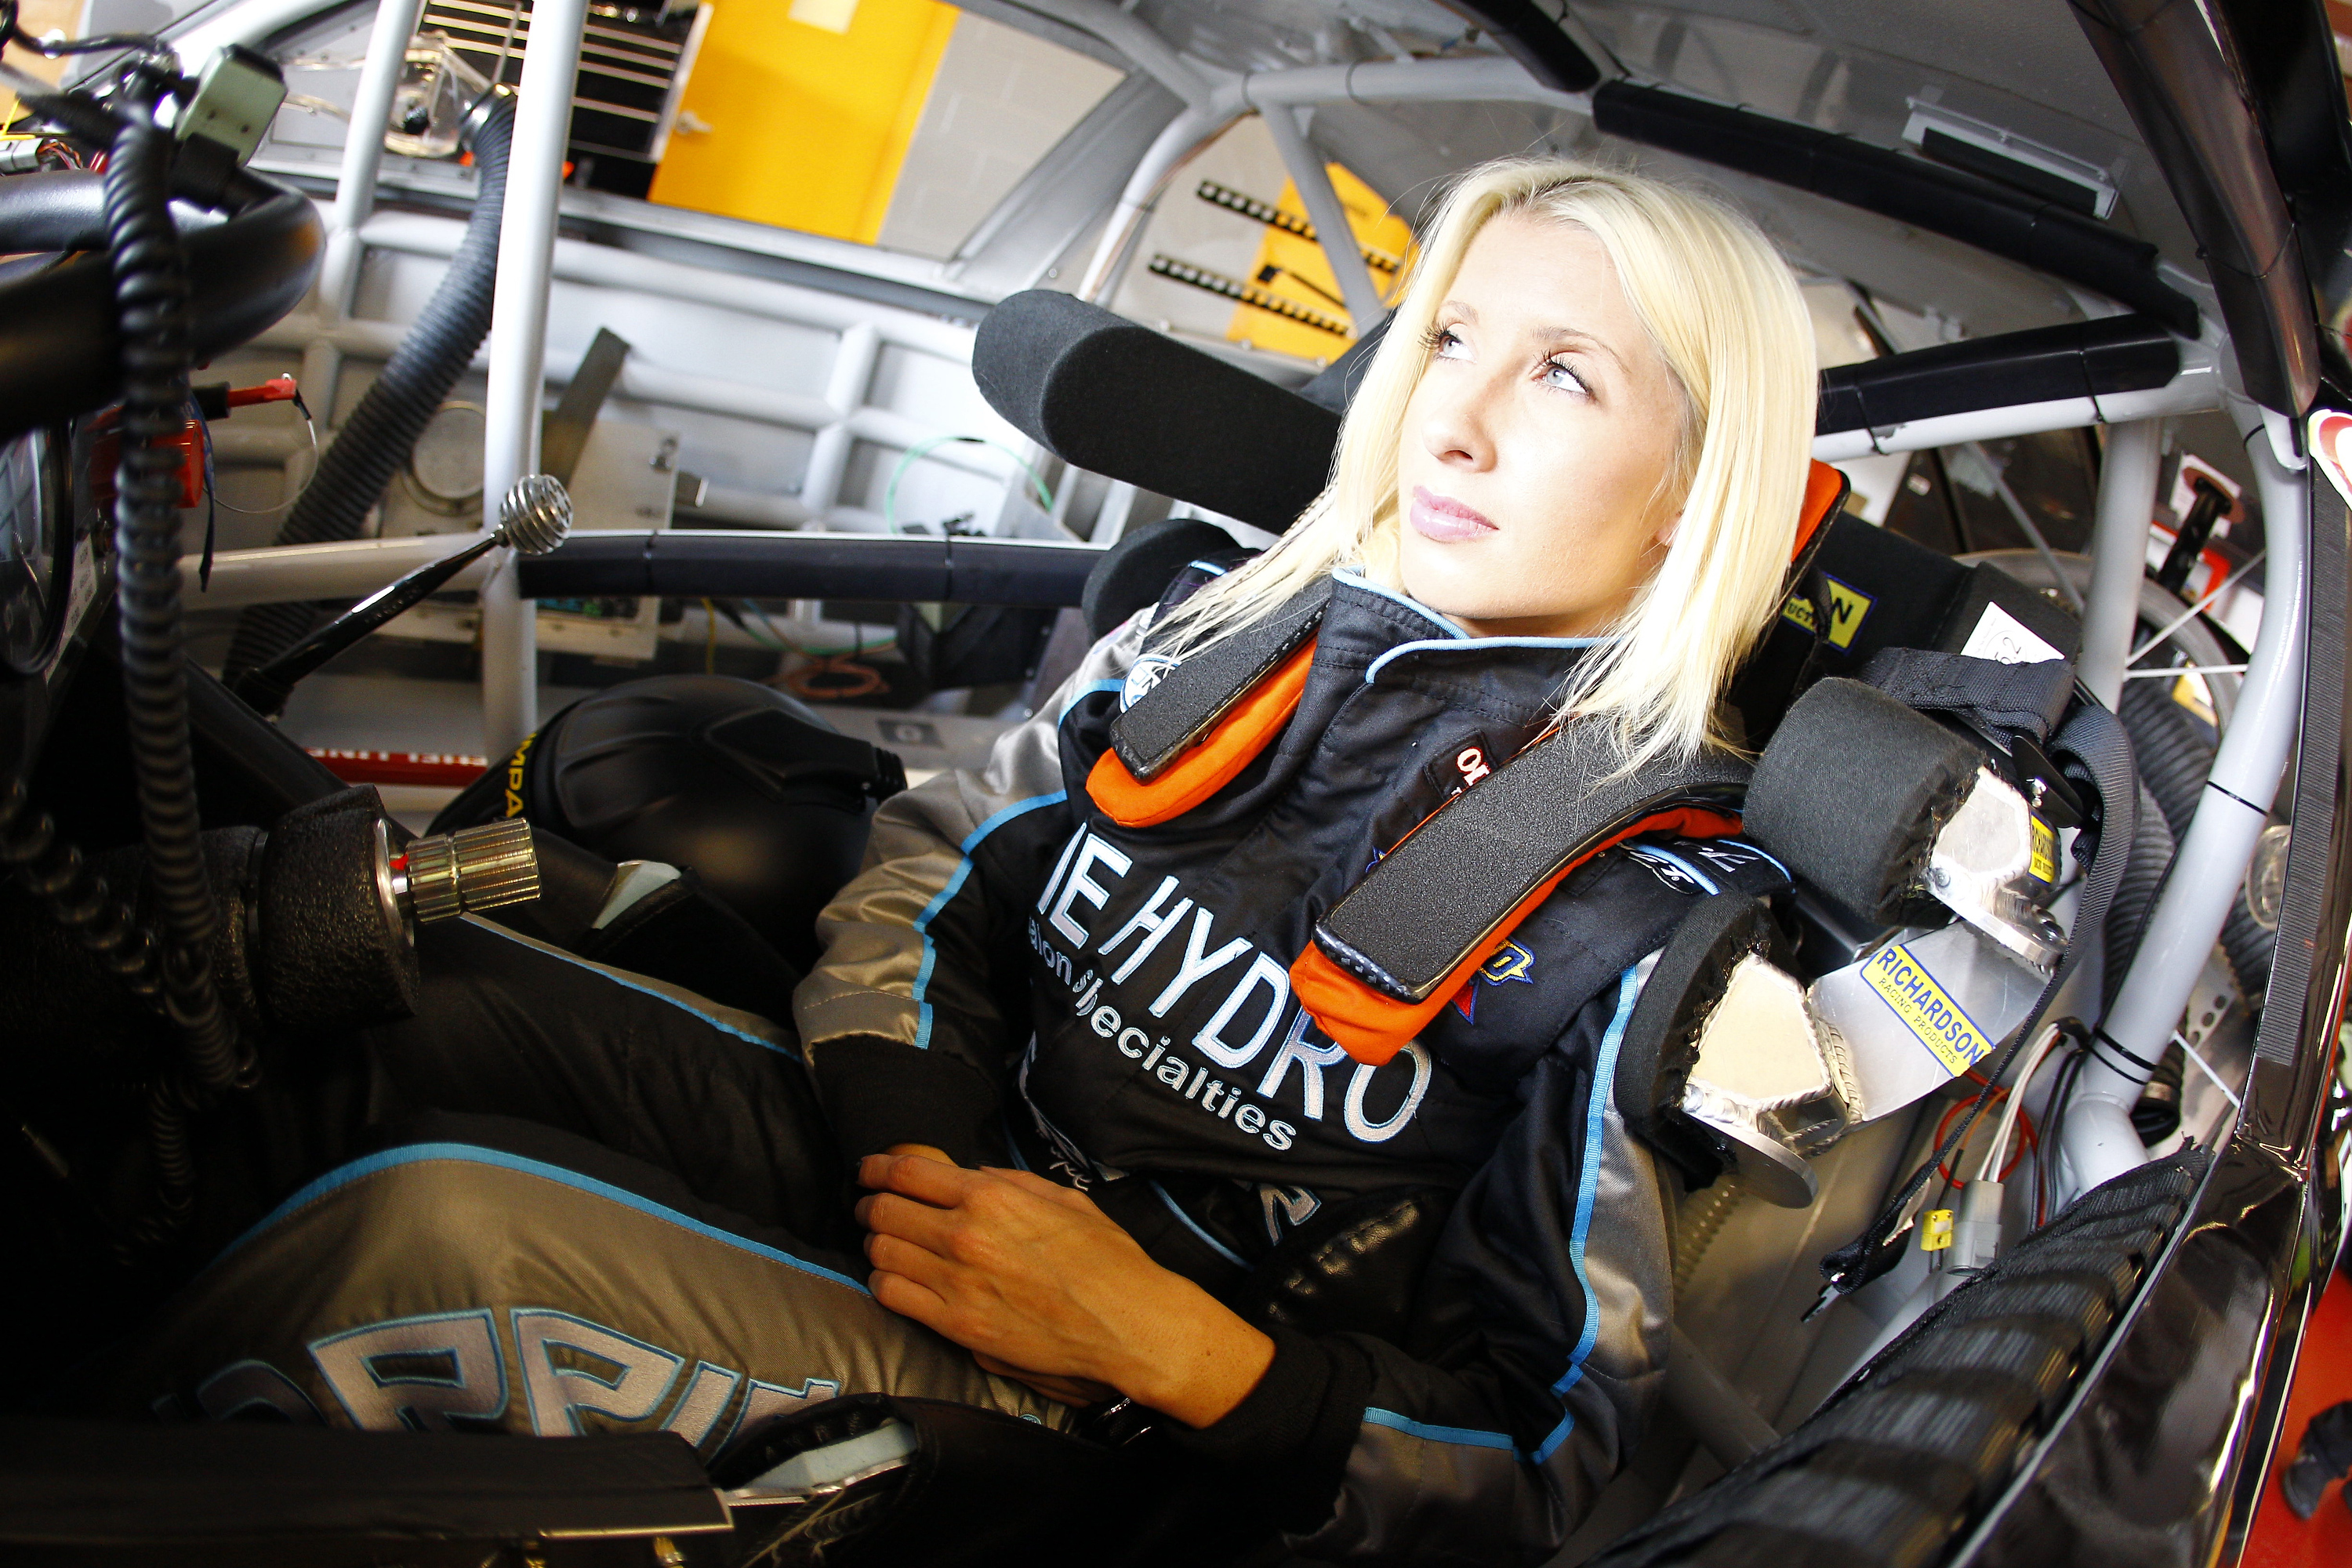 NASCAR's Angela Ruch Signs with Niece Motorsports | Business